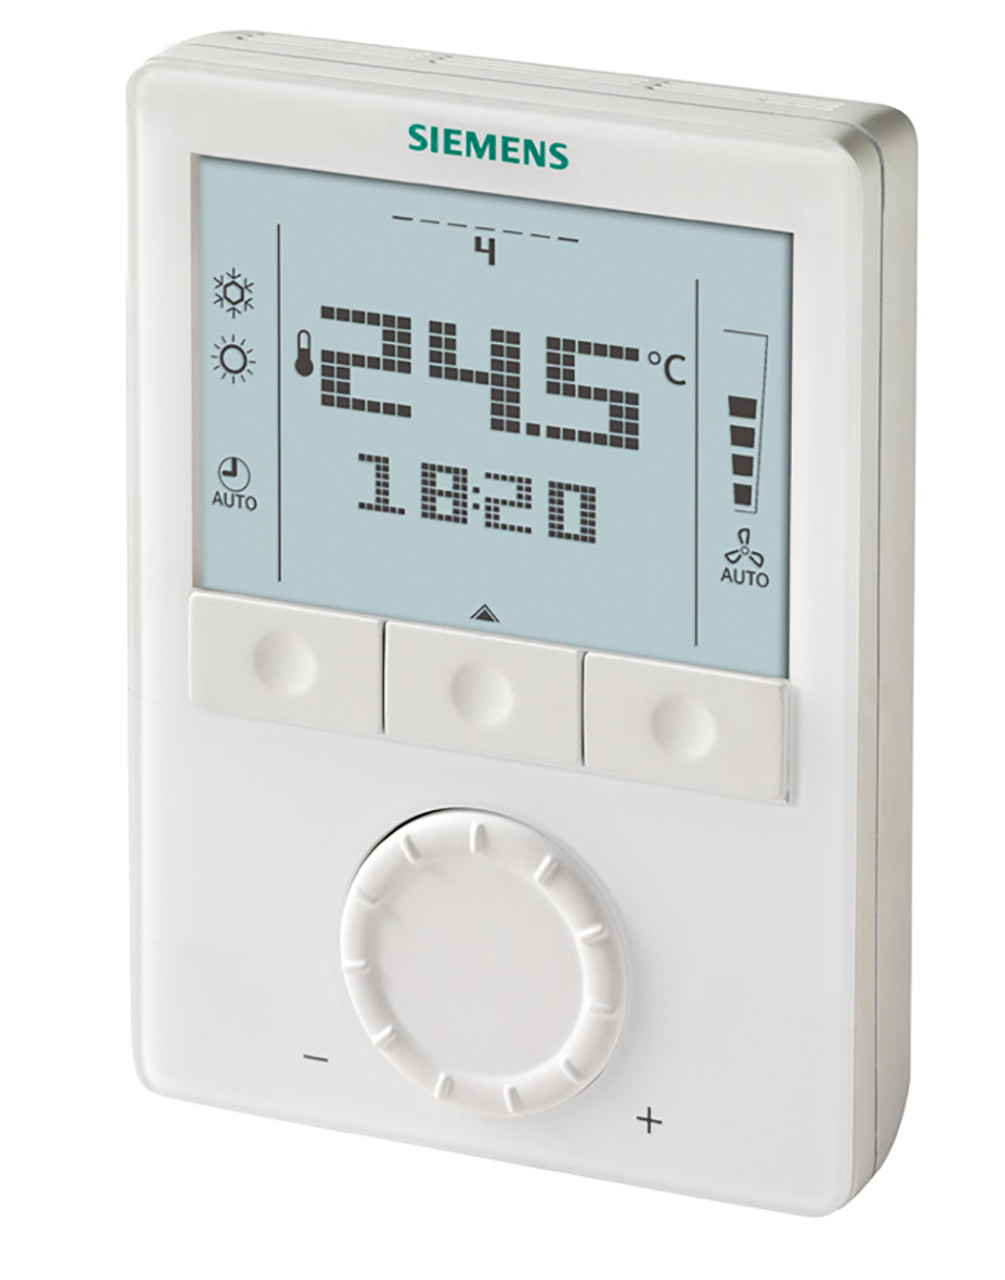 Siemens RDG100T, S55770-T159 Room thermostat